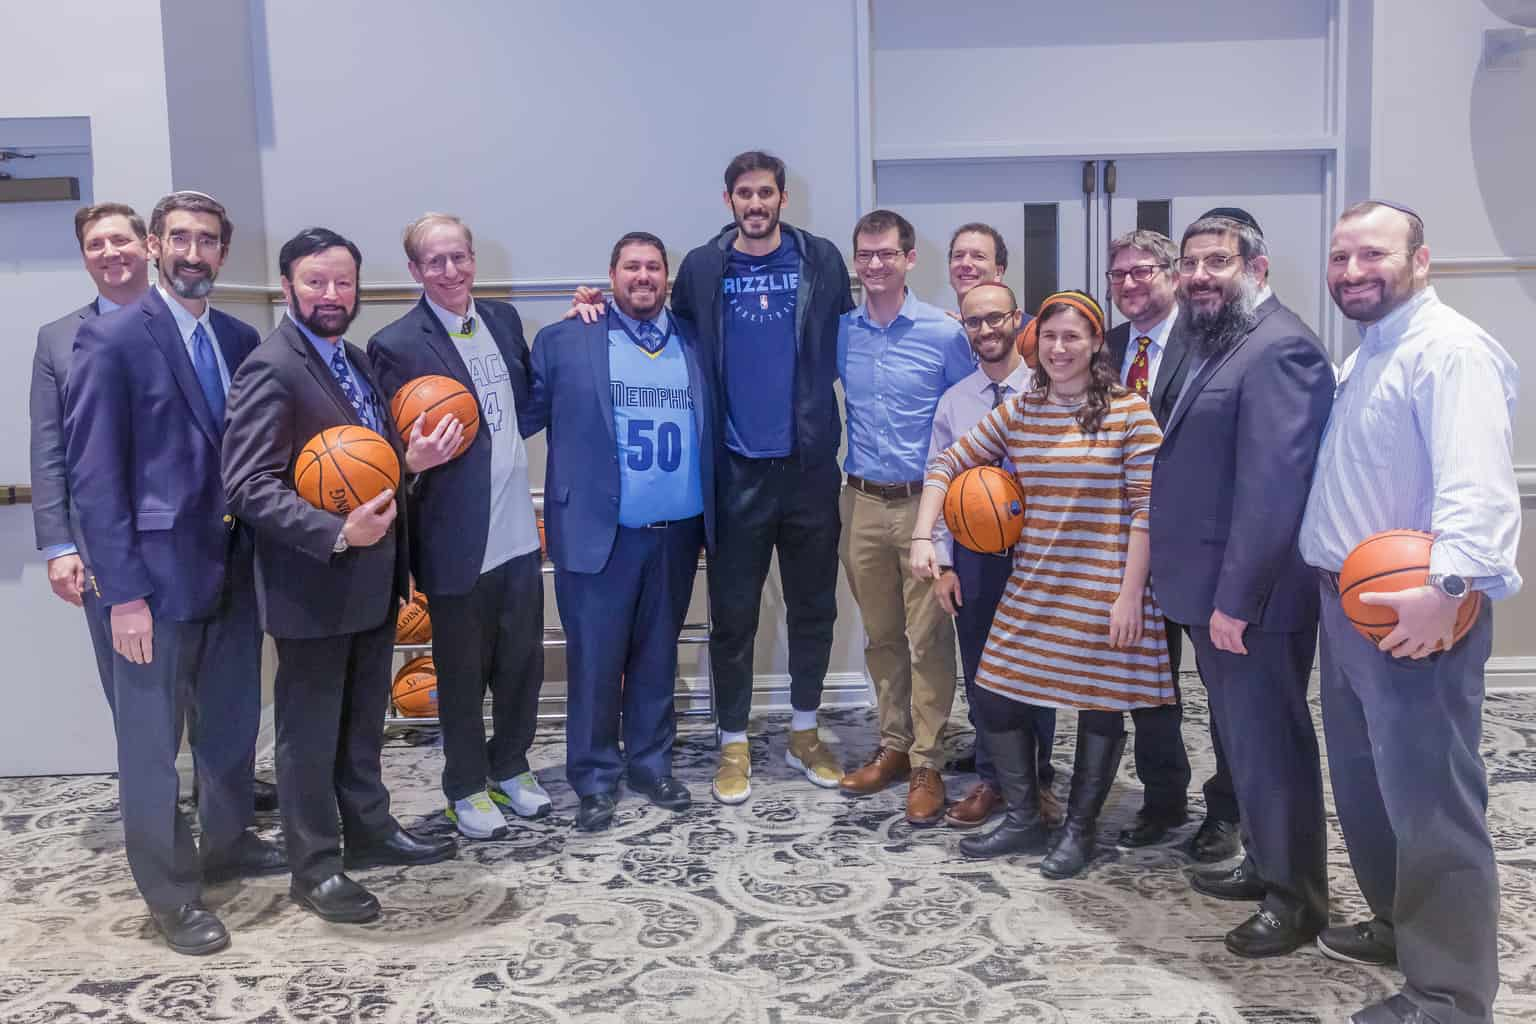 omri-casspi-celebrates-hanukkah-the-memphis-jewish-community